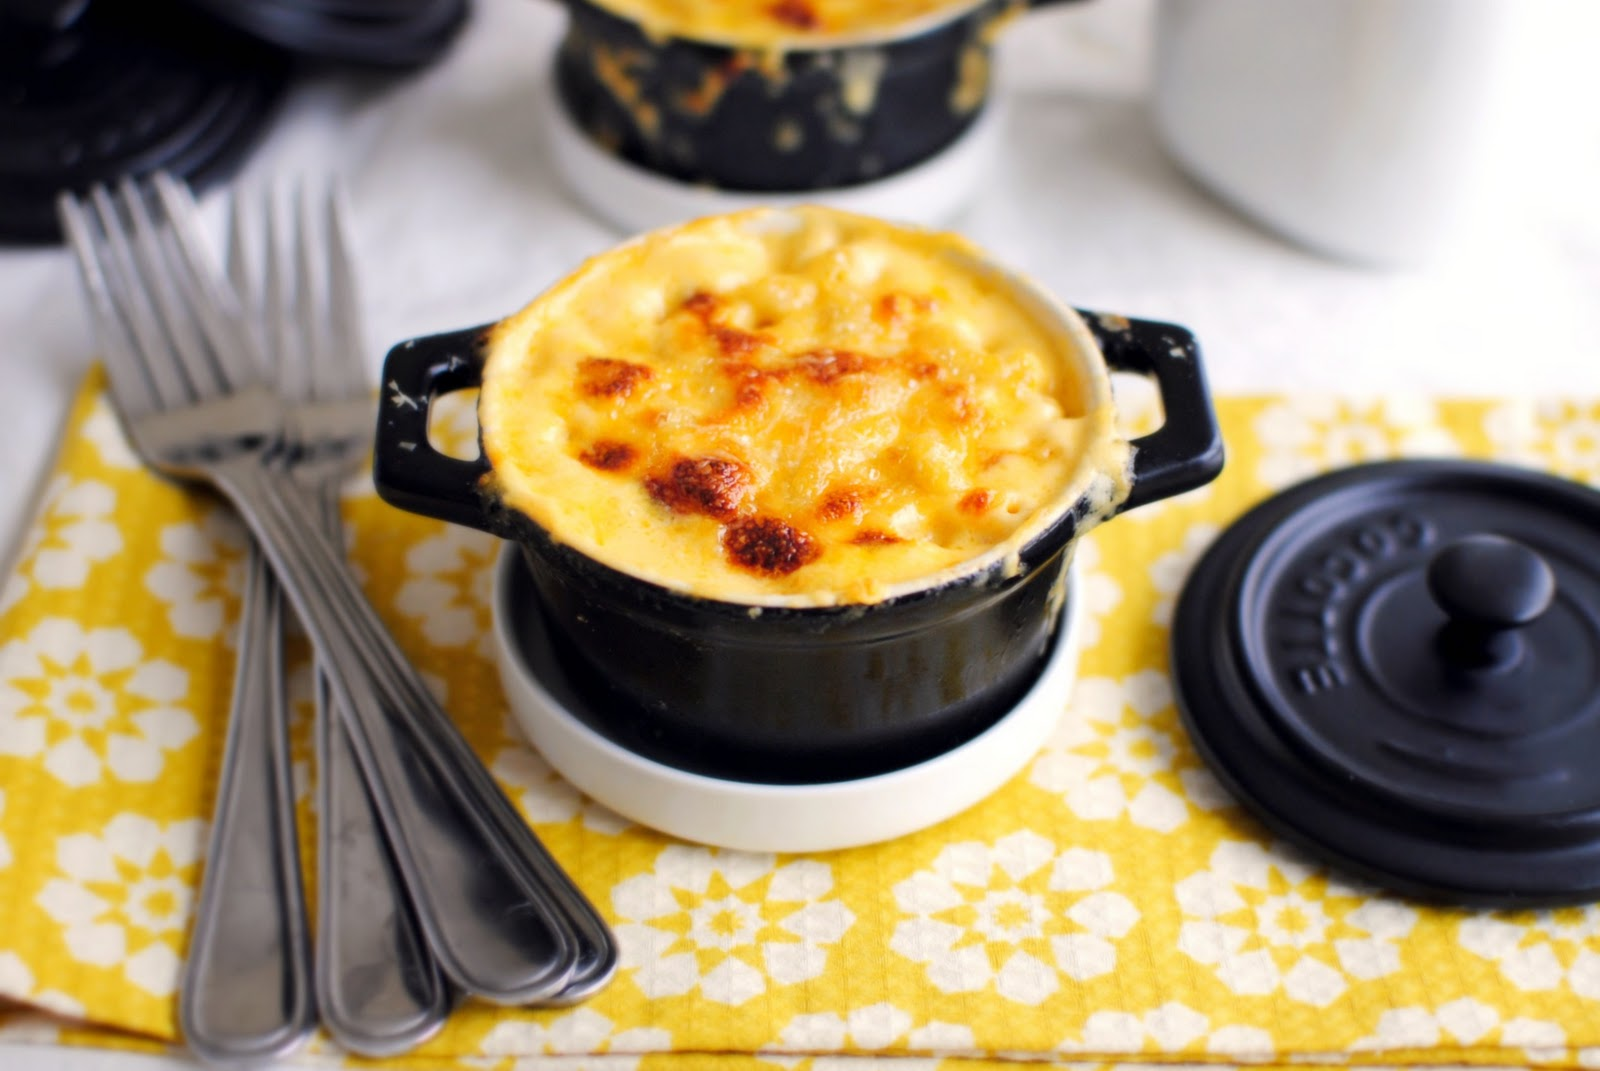 Simply Scratch Individual Baked Macaroni and Cheese Pots